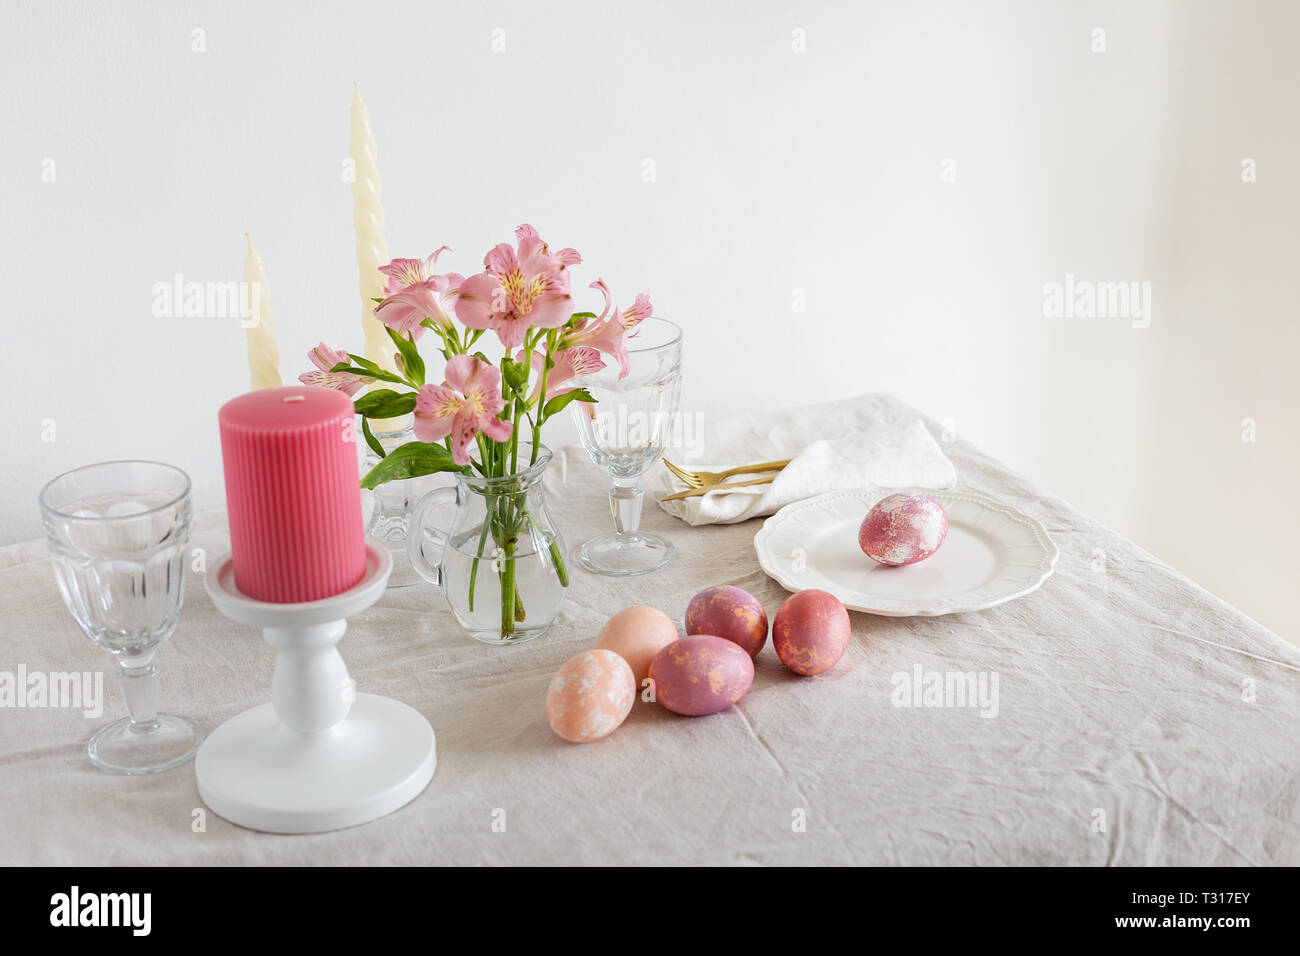 Festive Easter Spring Table Setting With Flowers, Candles ...